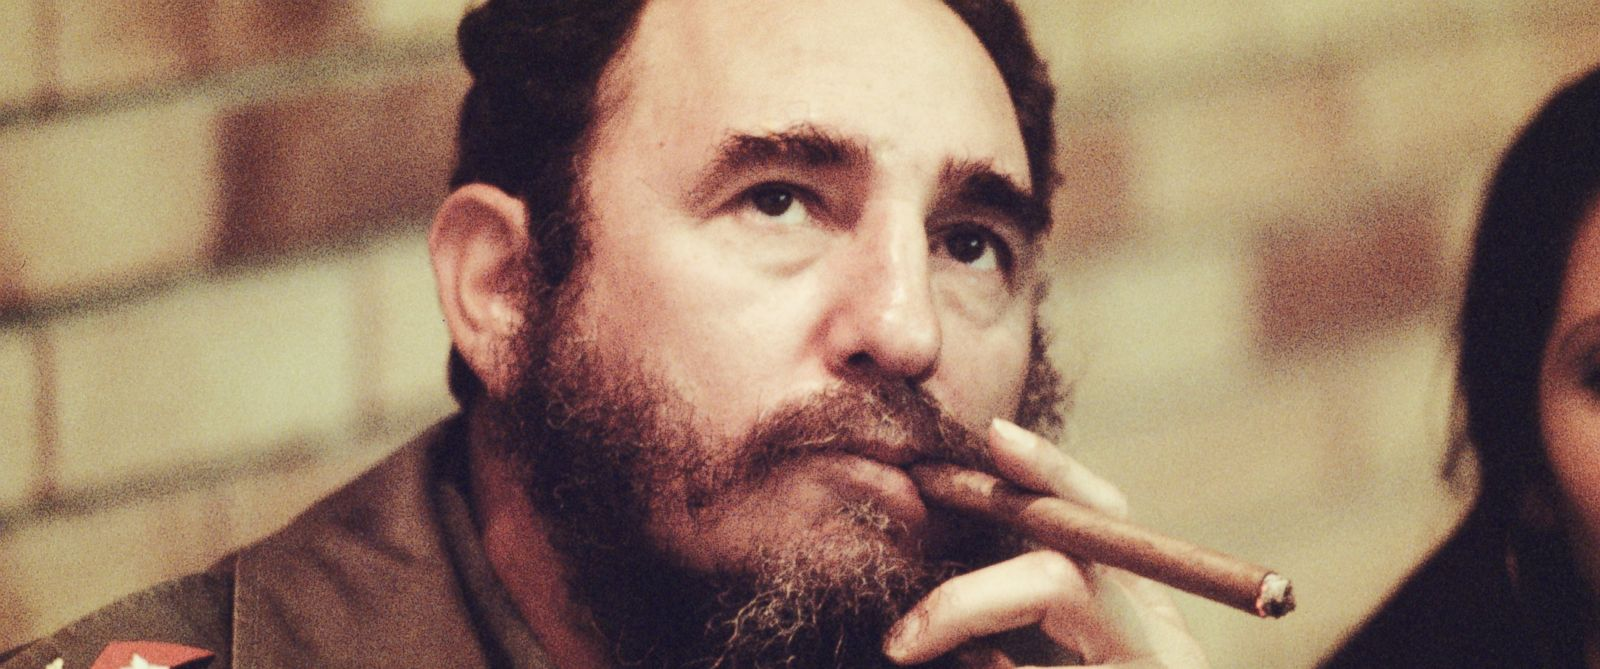 PHOTO: Fidel Castro smokes a cigar in his office in Havana, Cuba, 1977.